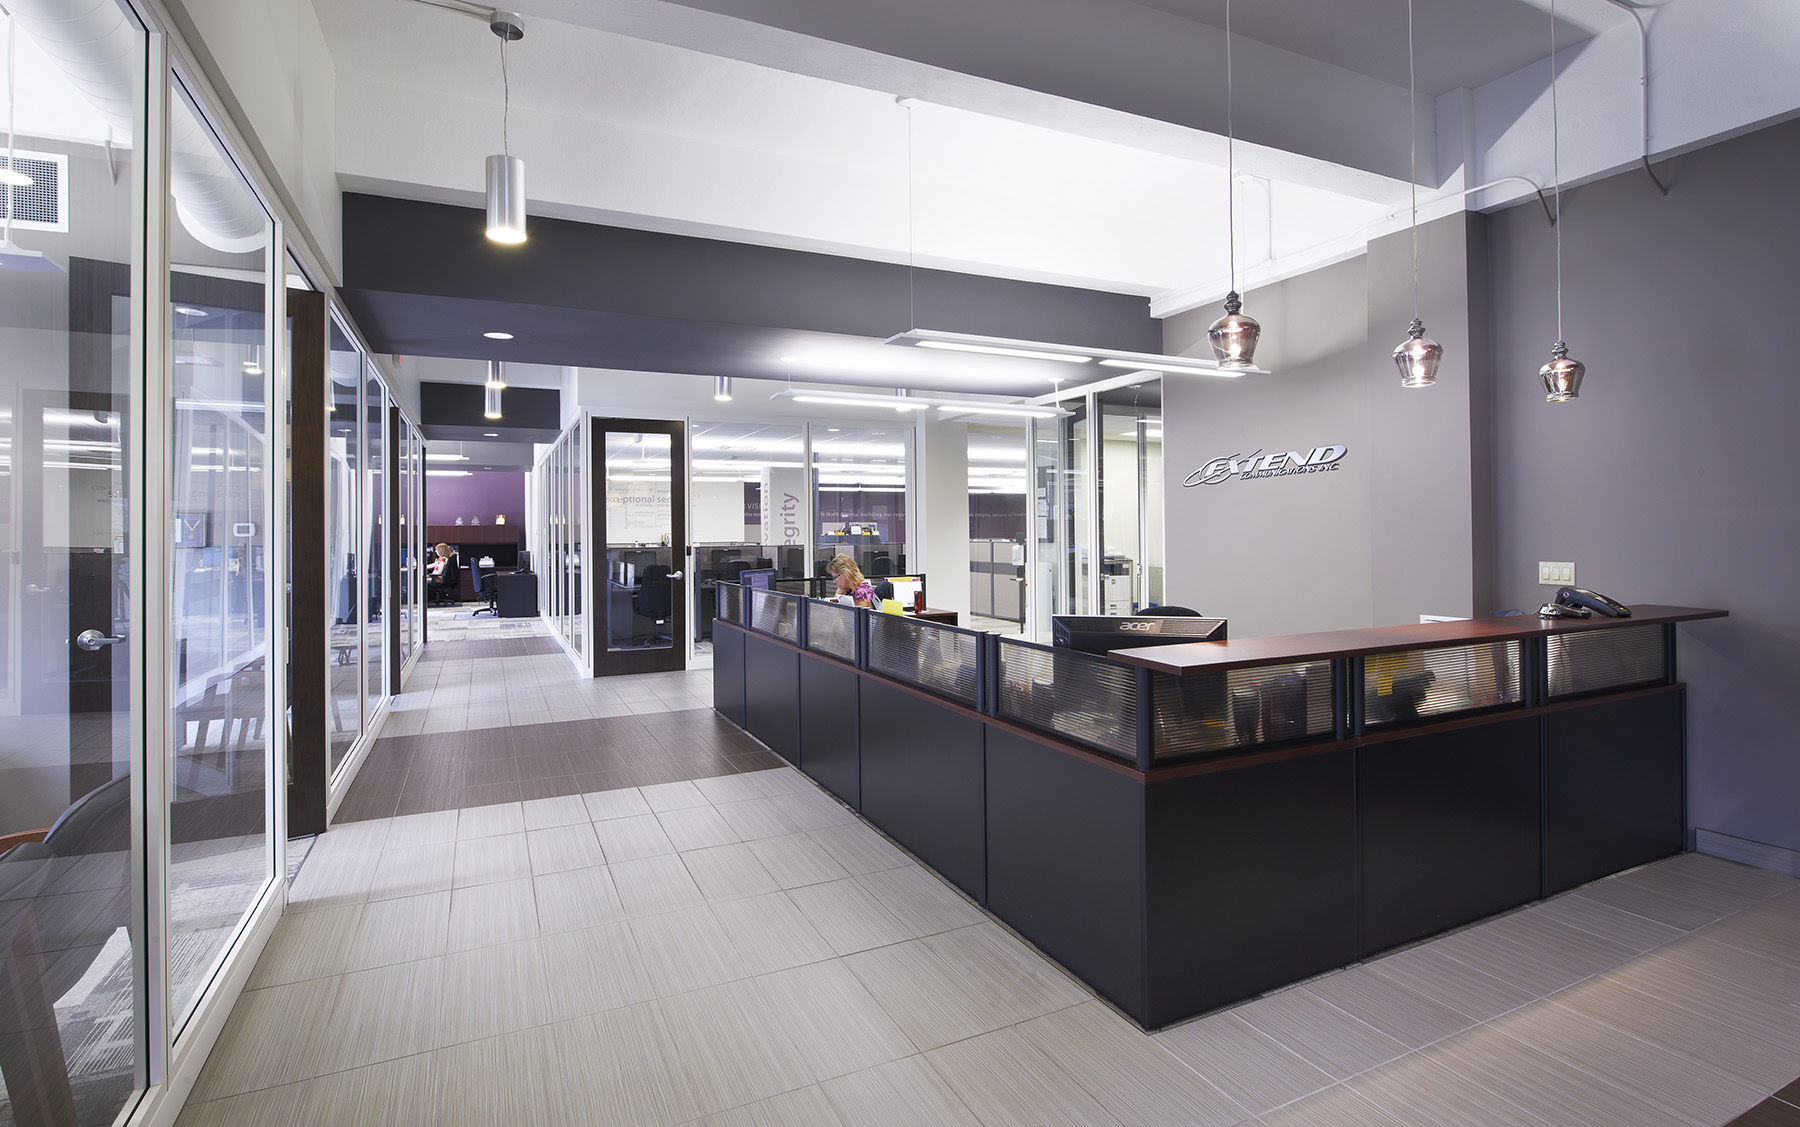 Extend Communications Corporate Offices, Brantford